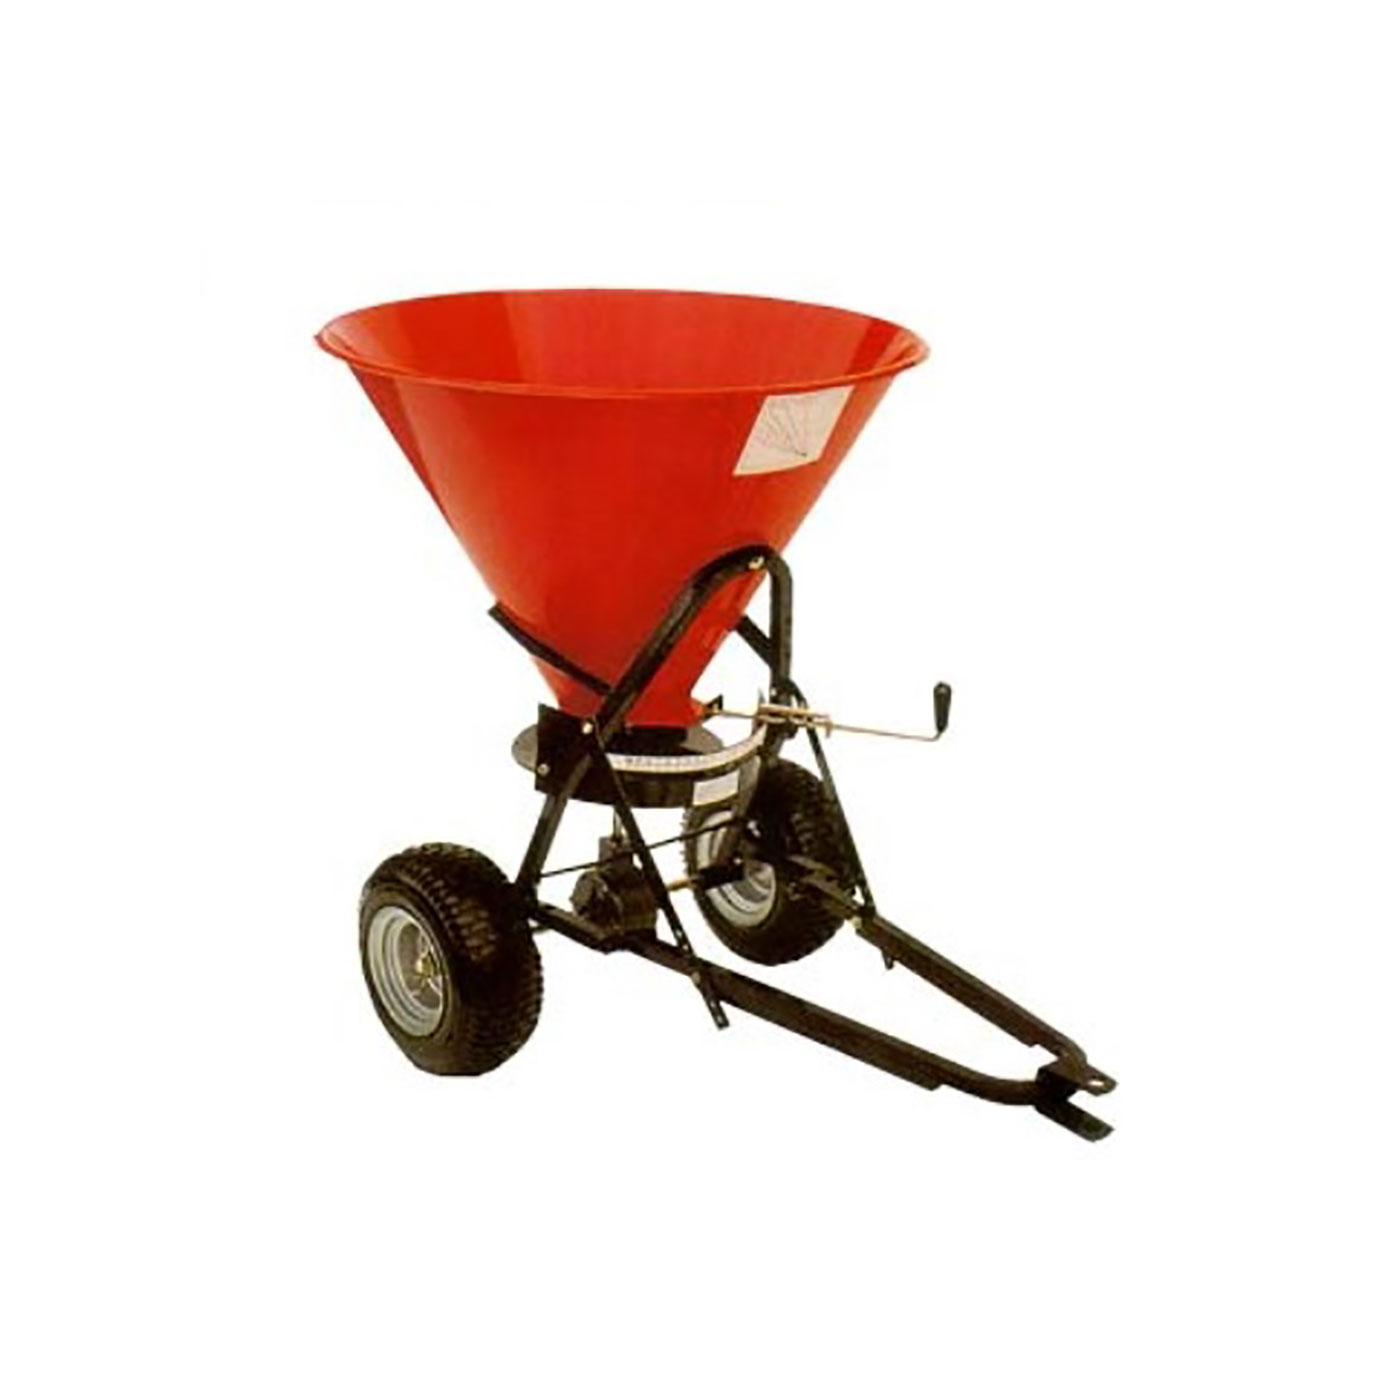 Befco Baby-Hop Tow-Behind Ground Driven Broadcast Spreader